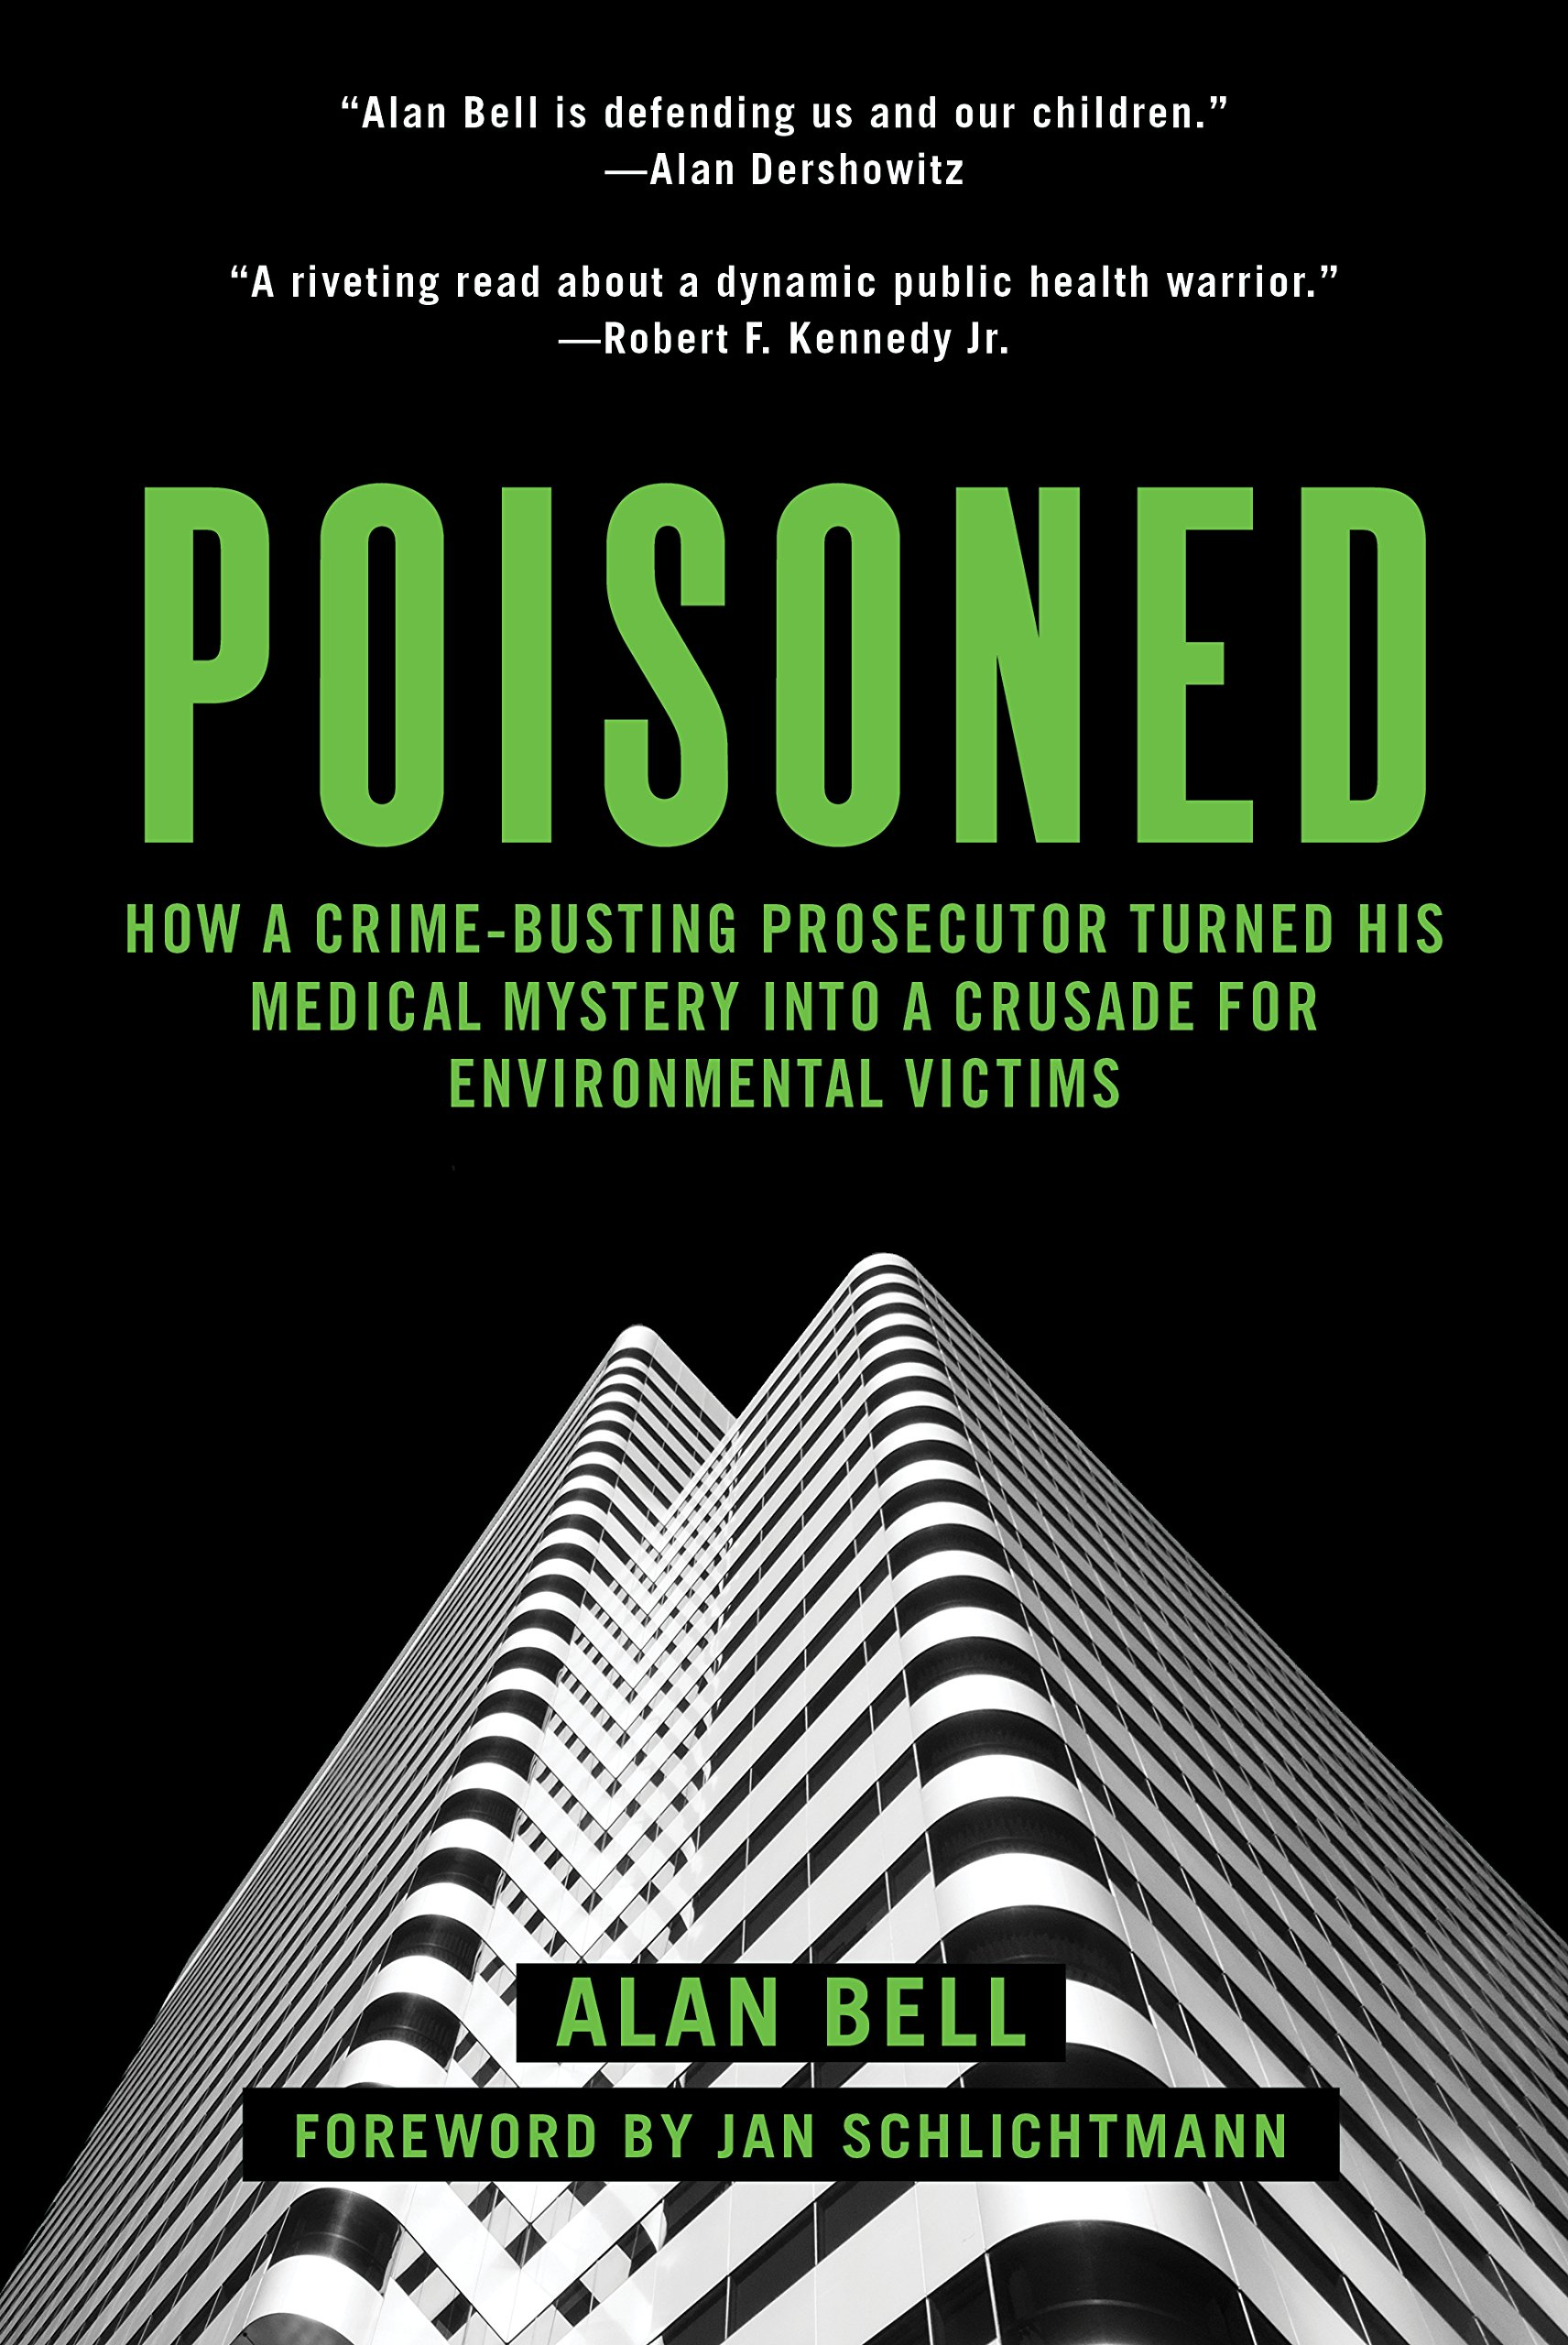 Poisoned: How a Crime-Busting Prosecutor Turned His Medical Mystery into a Crusade for Environmental Victims Hardcover – April 4, 2017 Alan Bell Jan Schlichtmann Skyhorse Publishing 1510702644